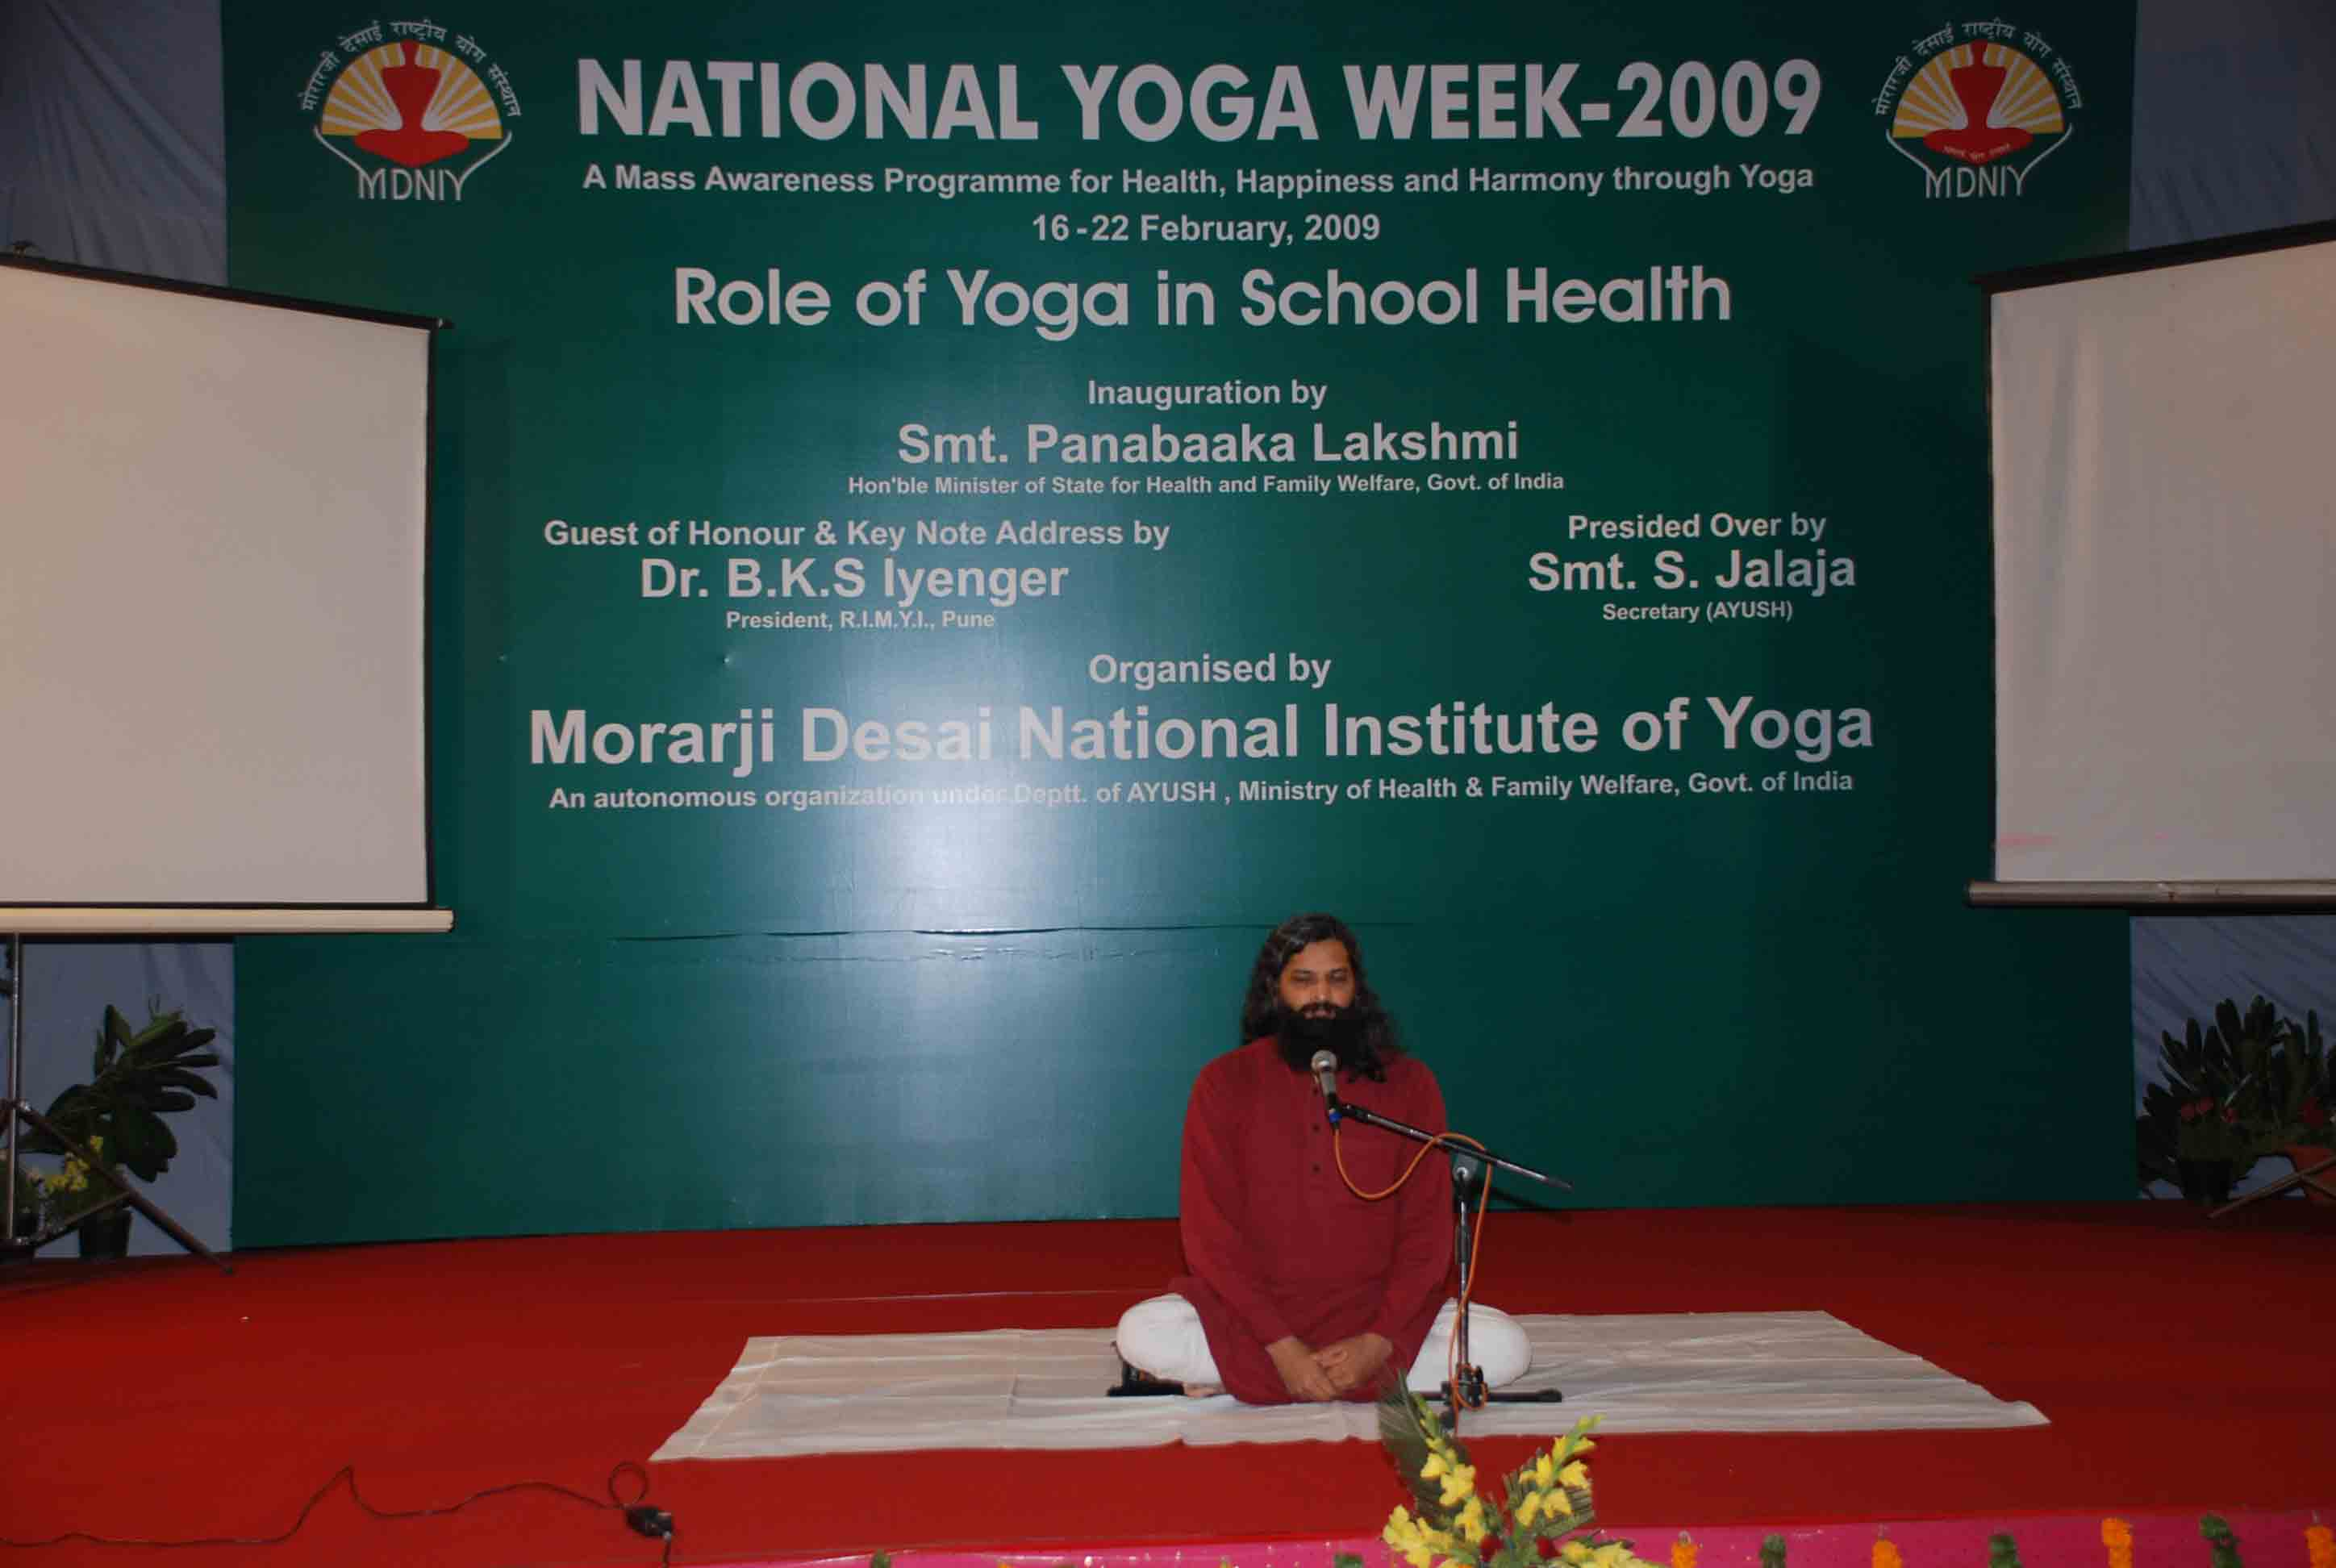 National Yoga Week